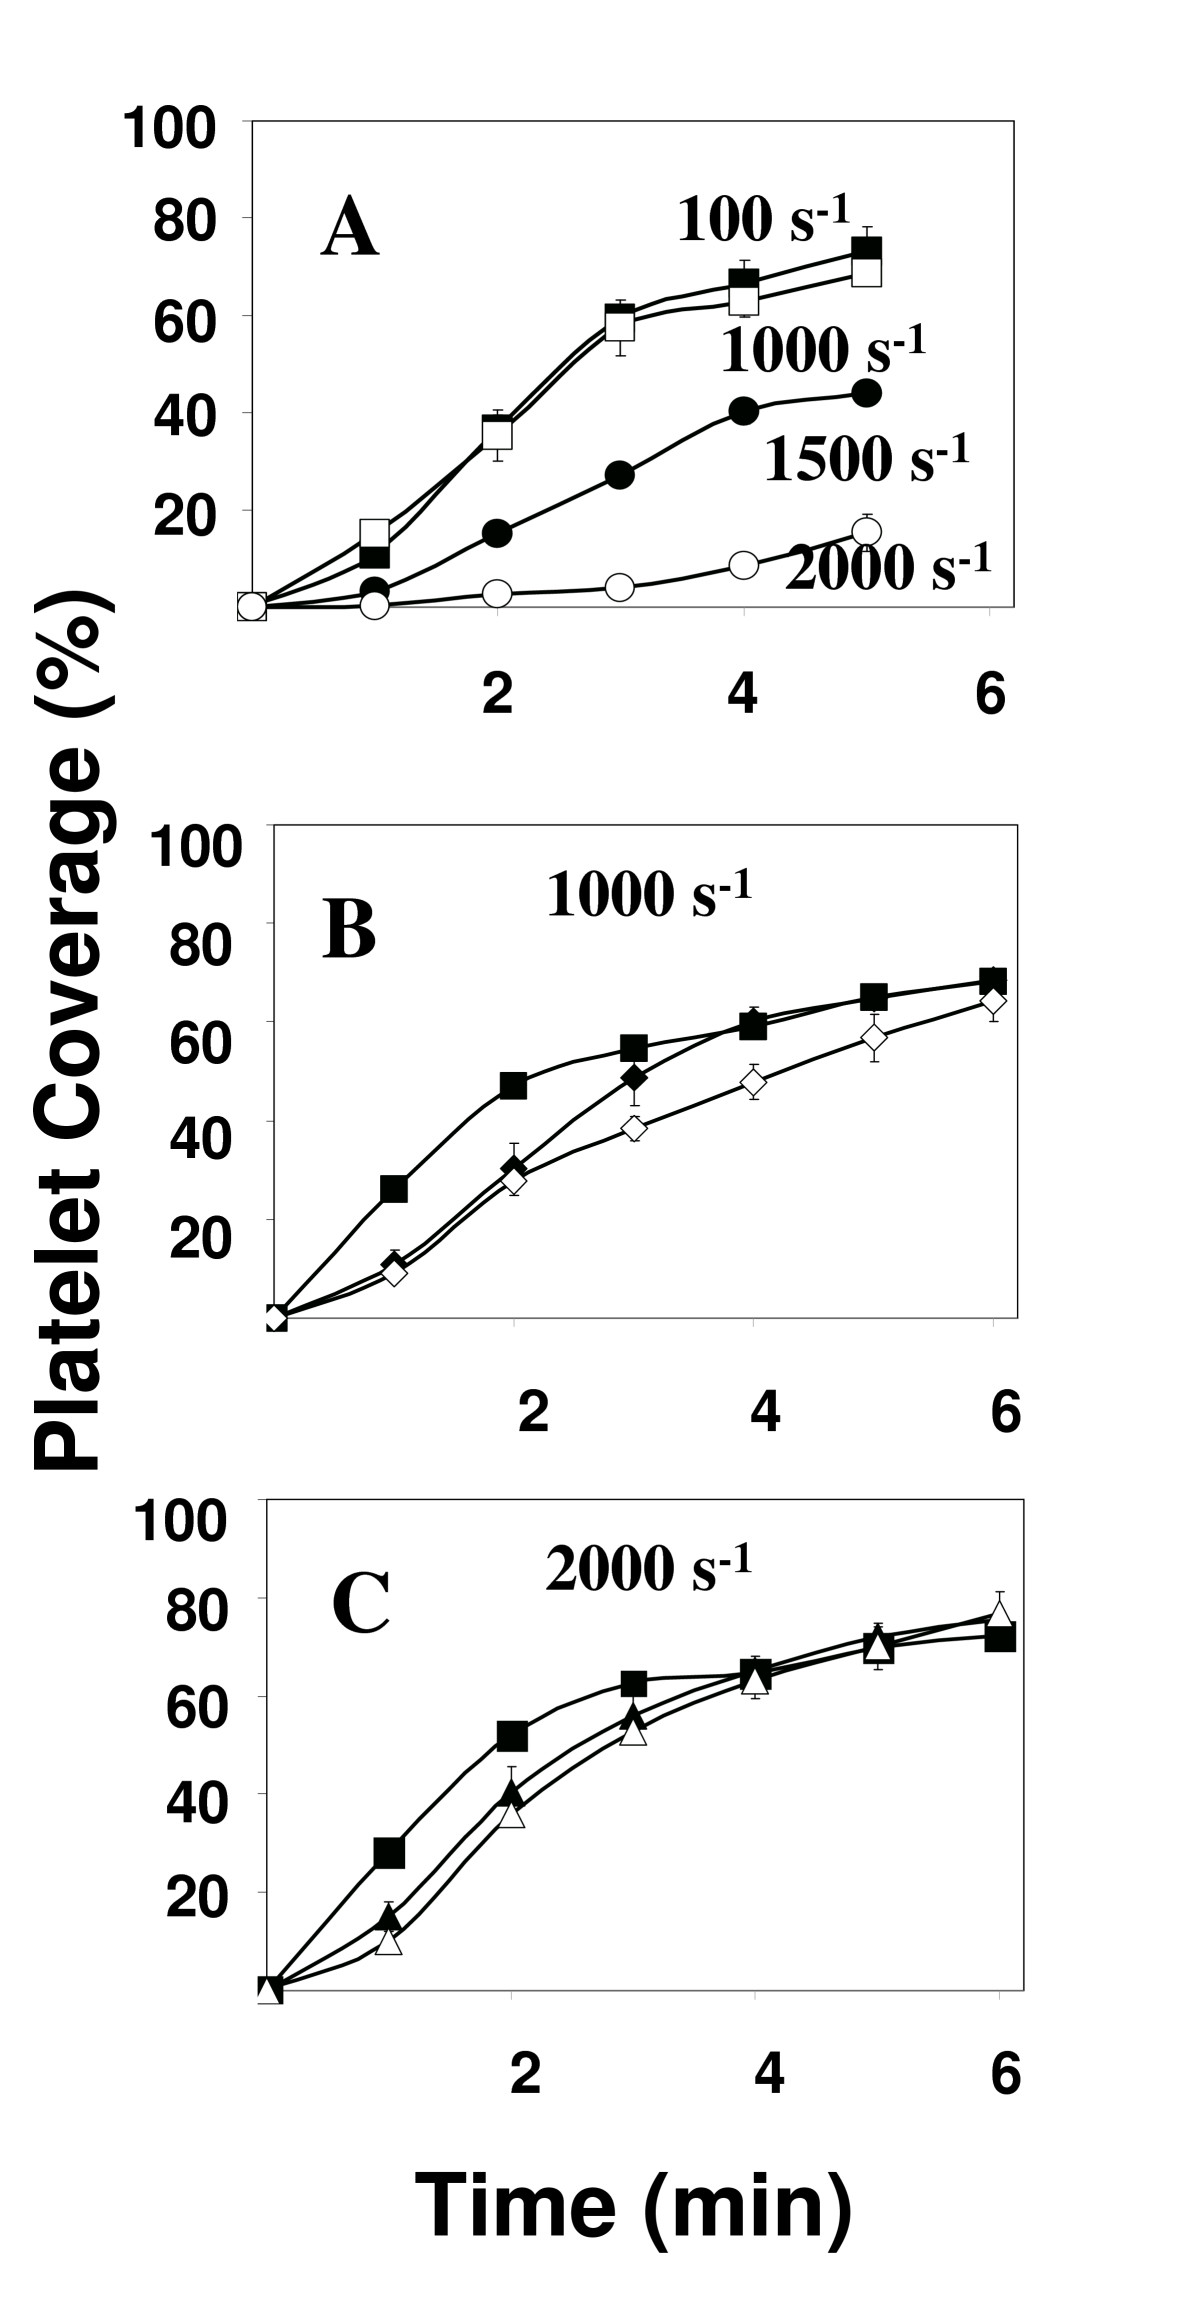 https://static-content.springer.com/image/art%3A10.1186%2F1477-9560-2-11/MediaObjects/12959_2004_Article_18_Fig2_HTML.jpg